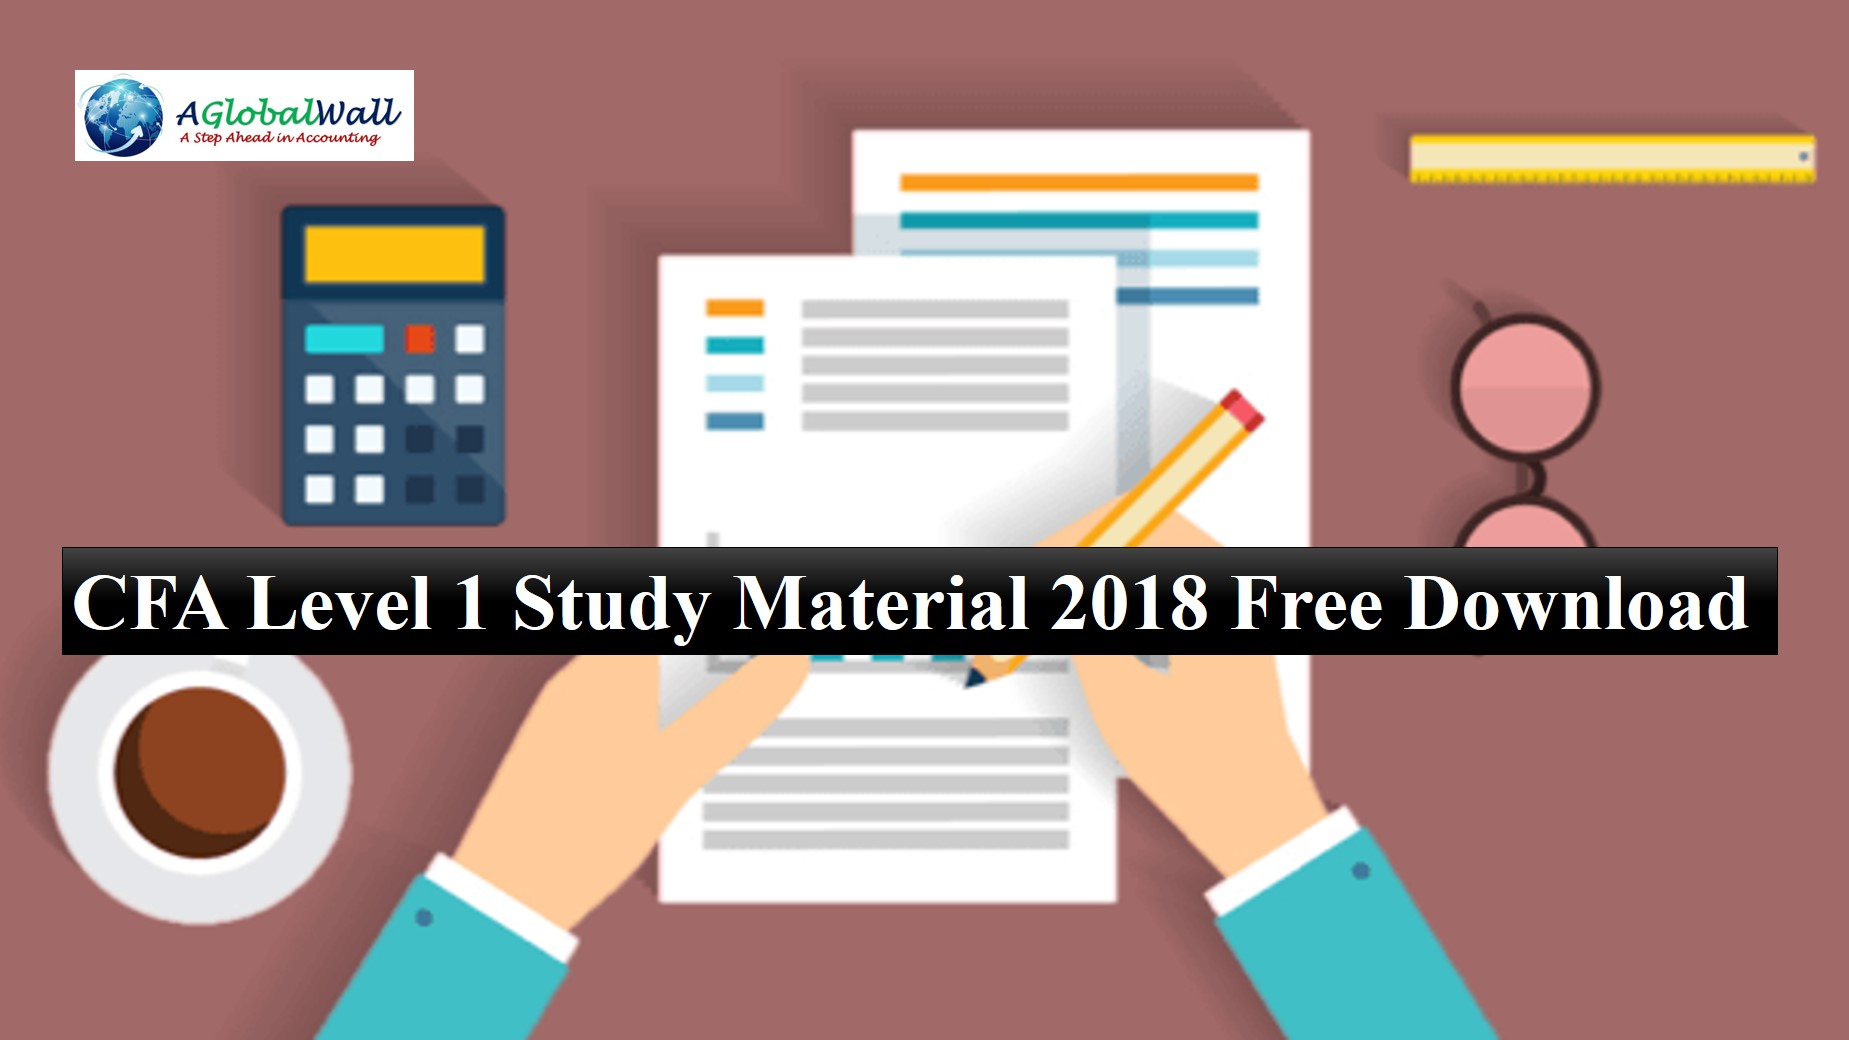 CFA Level 1 Study Material 2018 Free Download